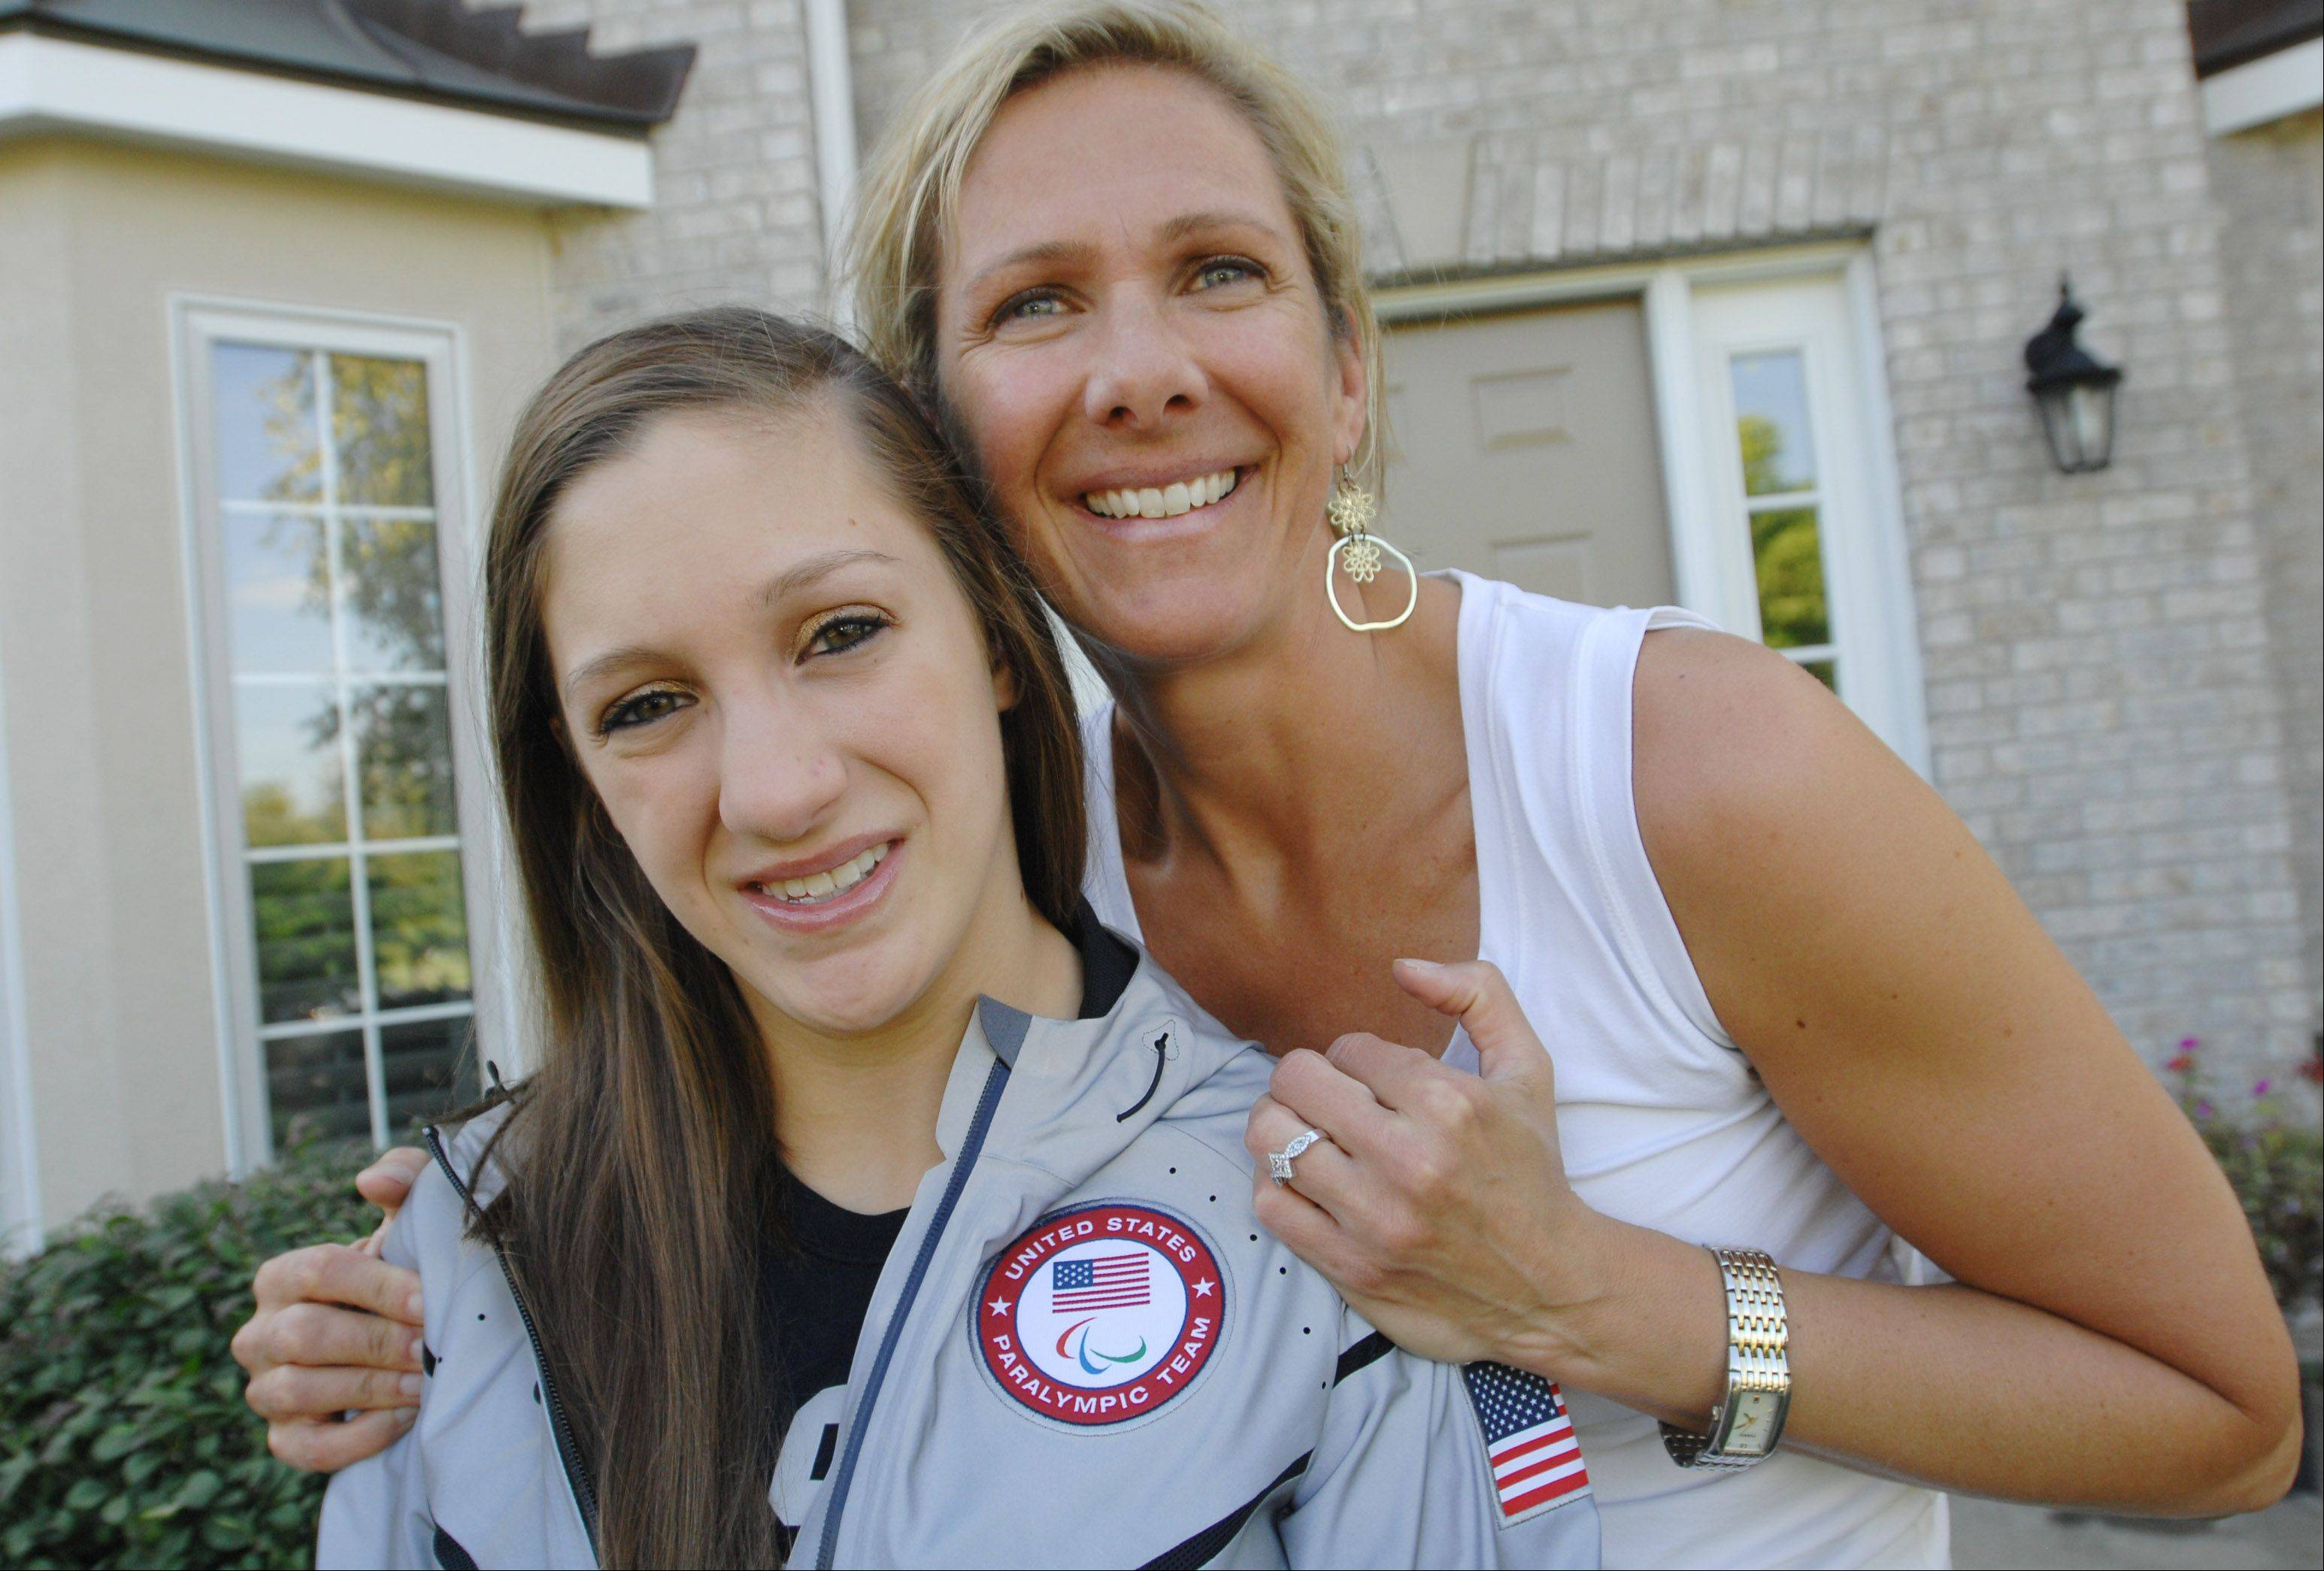 Naperville paralympian swimmer Alyssa Gialamas sports her podium jacket from the London Games at her family�s Naperville home Wednesday. She is pictured with her mother, Lisa. She did not win any medals, but she looks forward to 2016.